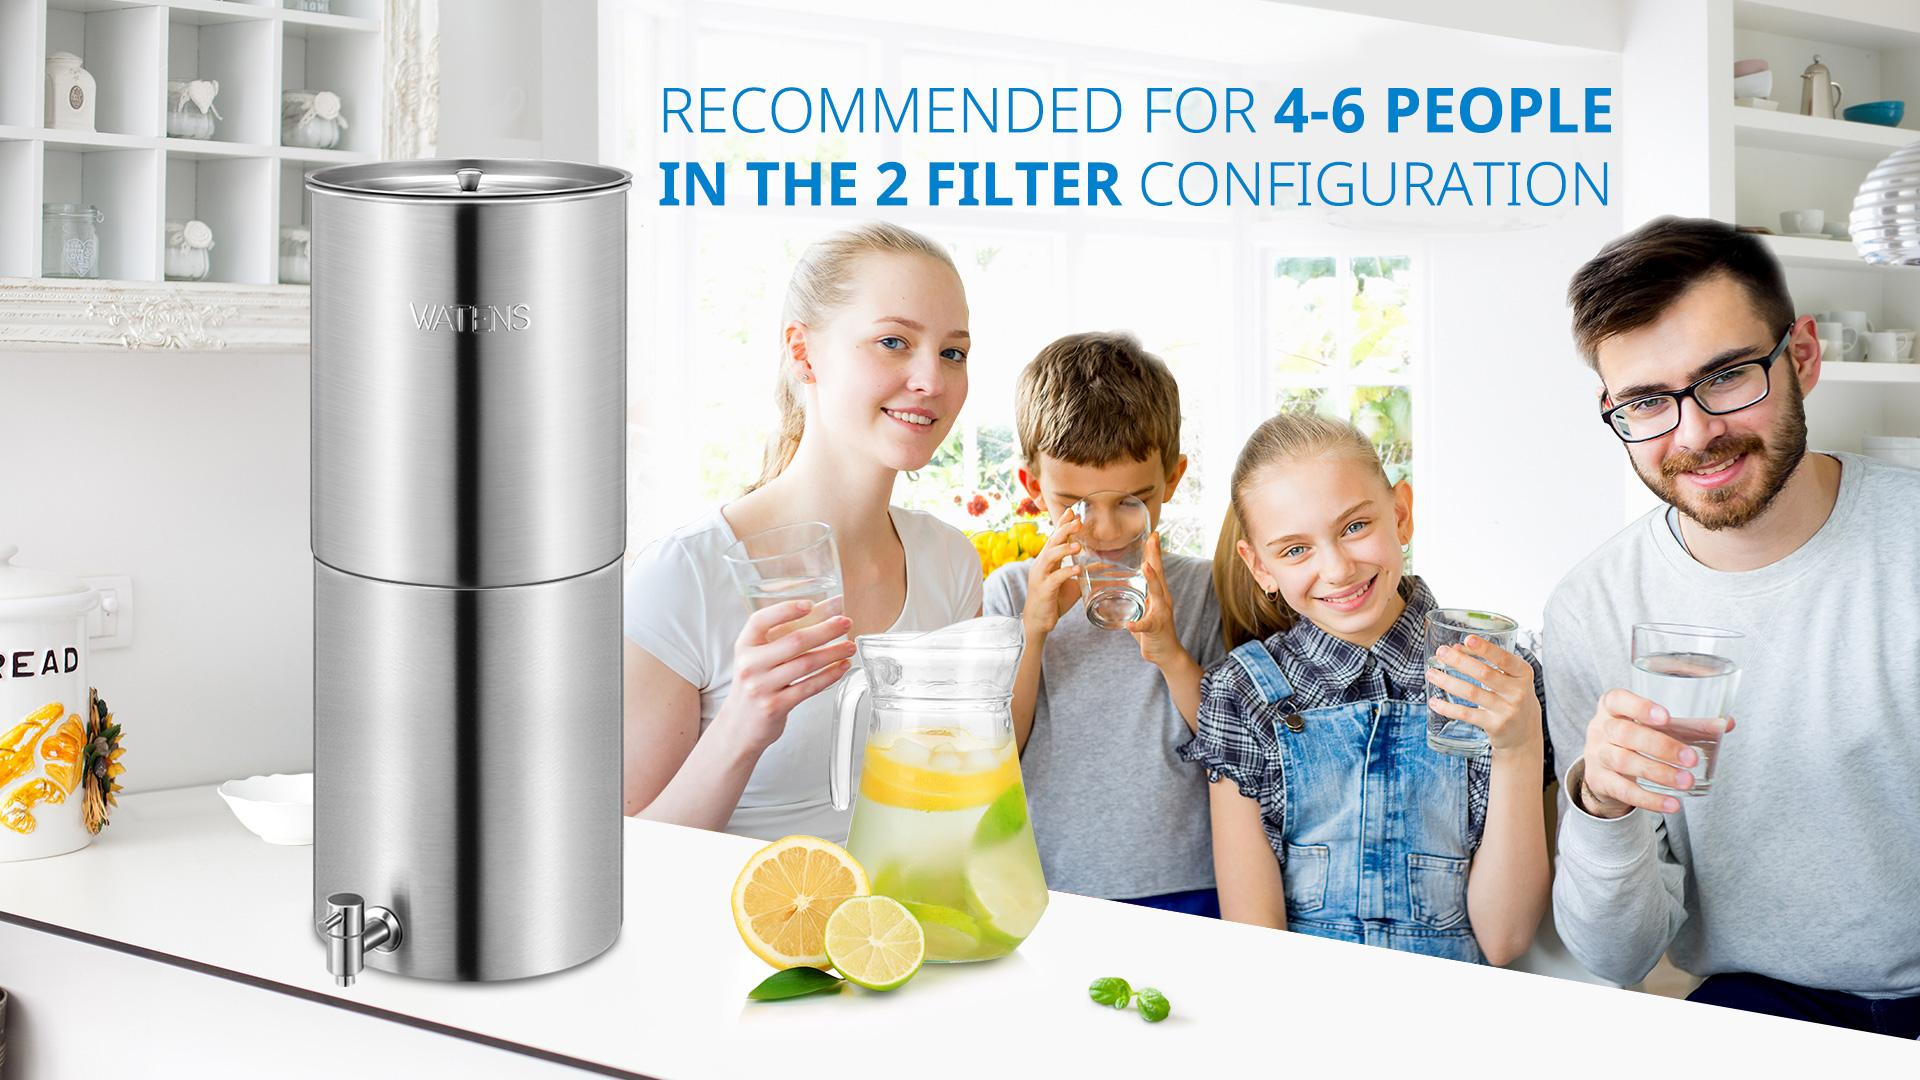 How to Install the Watens Gravity Countertop Water Filter System?